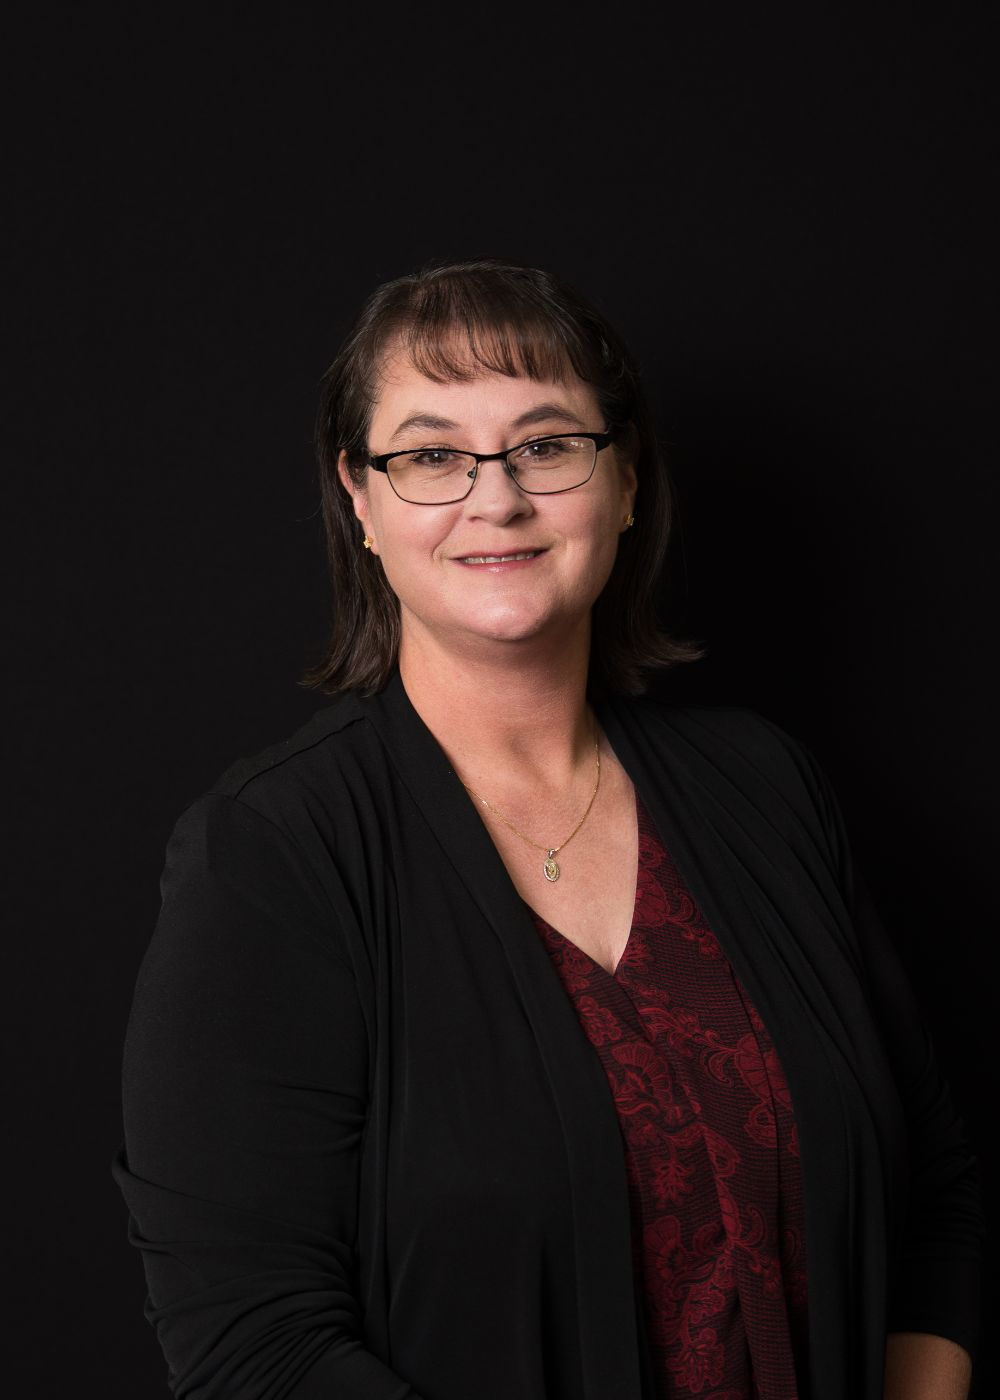 Kristi Miller individual and small business accounting at Peterson and Associates